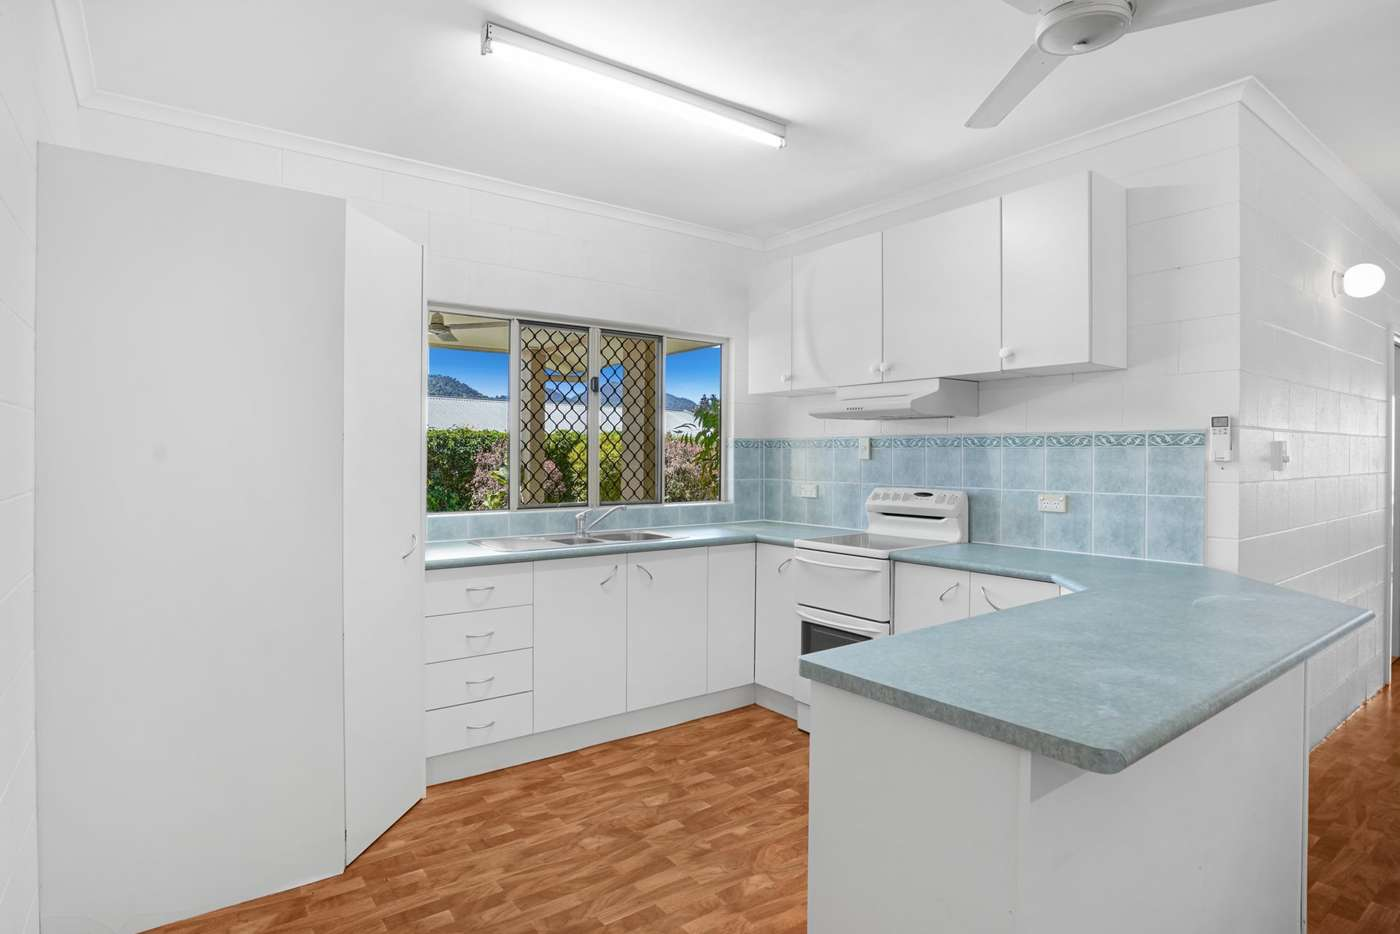 Fifth view of Homely house listing, 91 Jungara Road, Redlynch QLD 4870